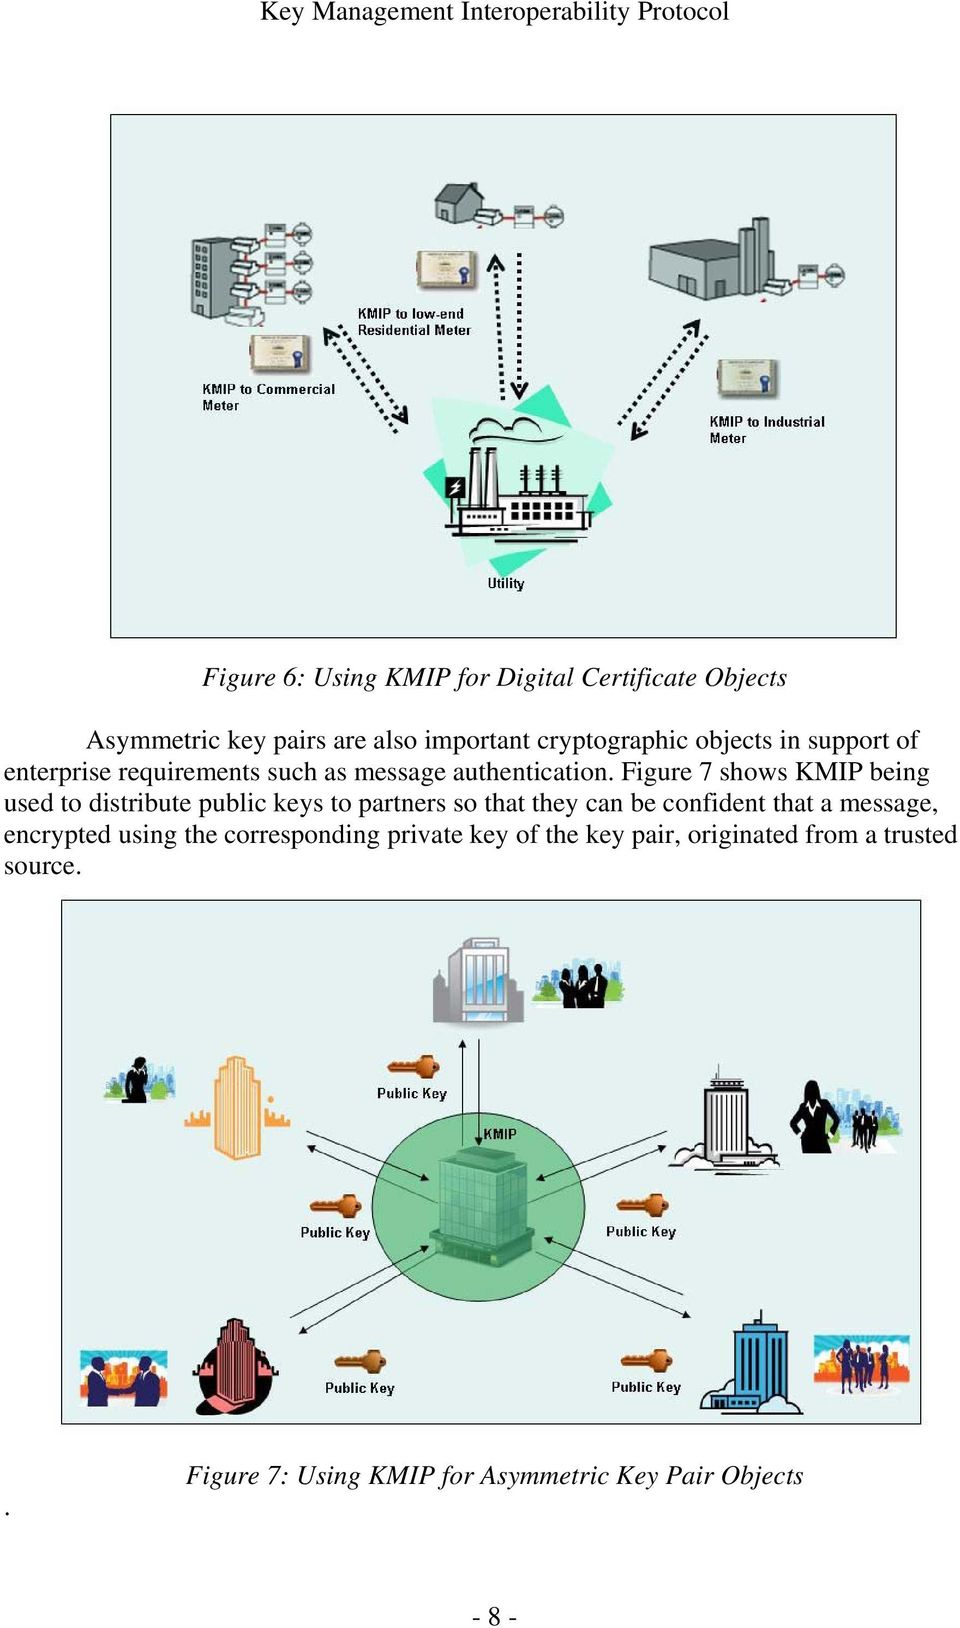 Figure 7 shows KMIP being used to distribute public keys to partners so that they can be confident that a